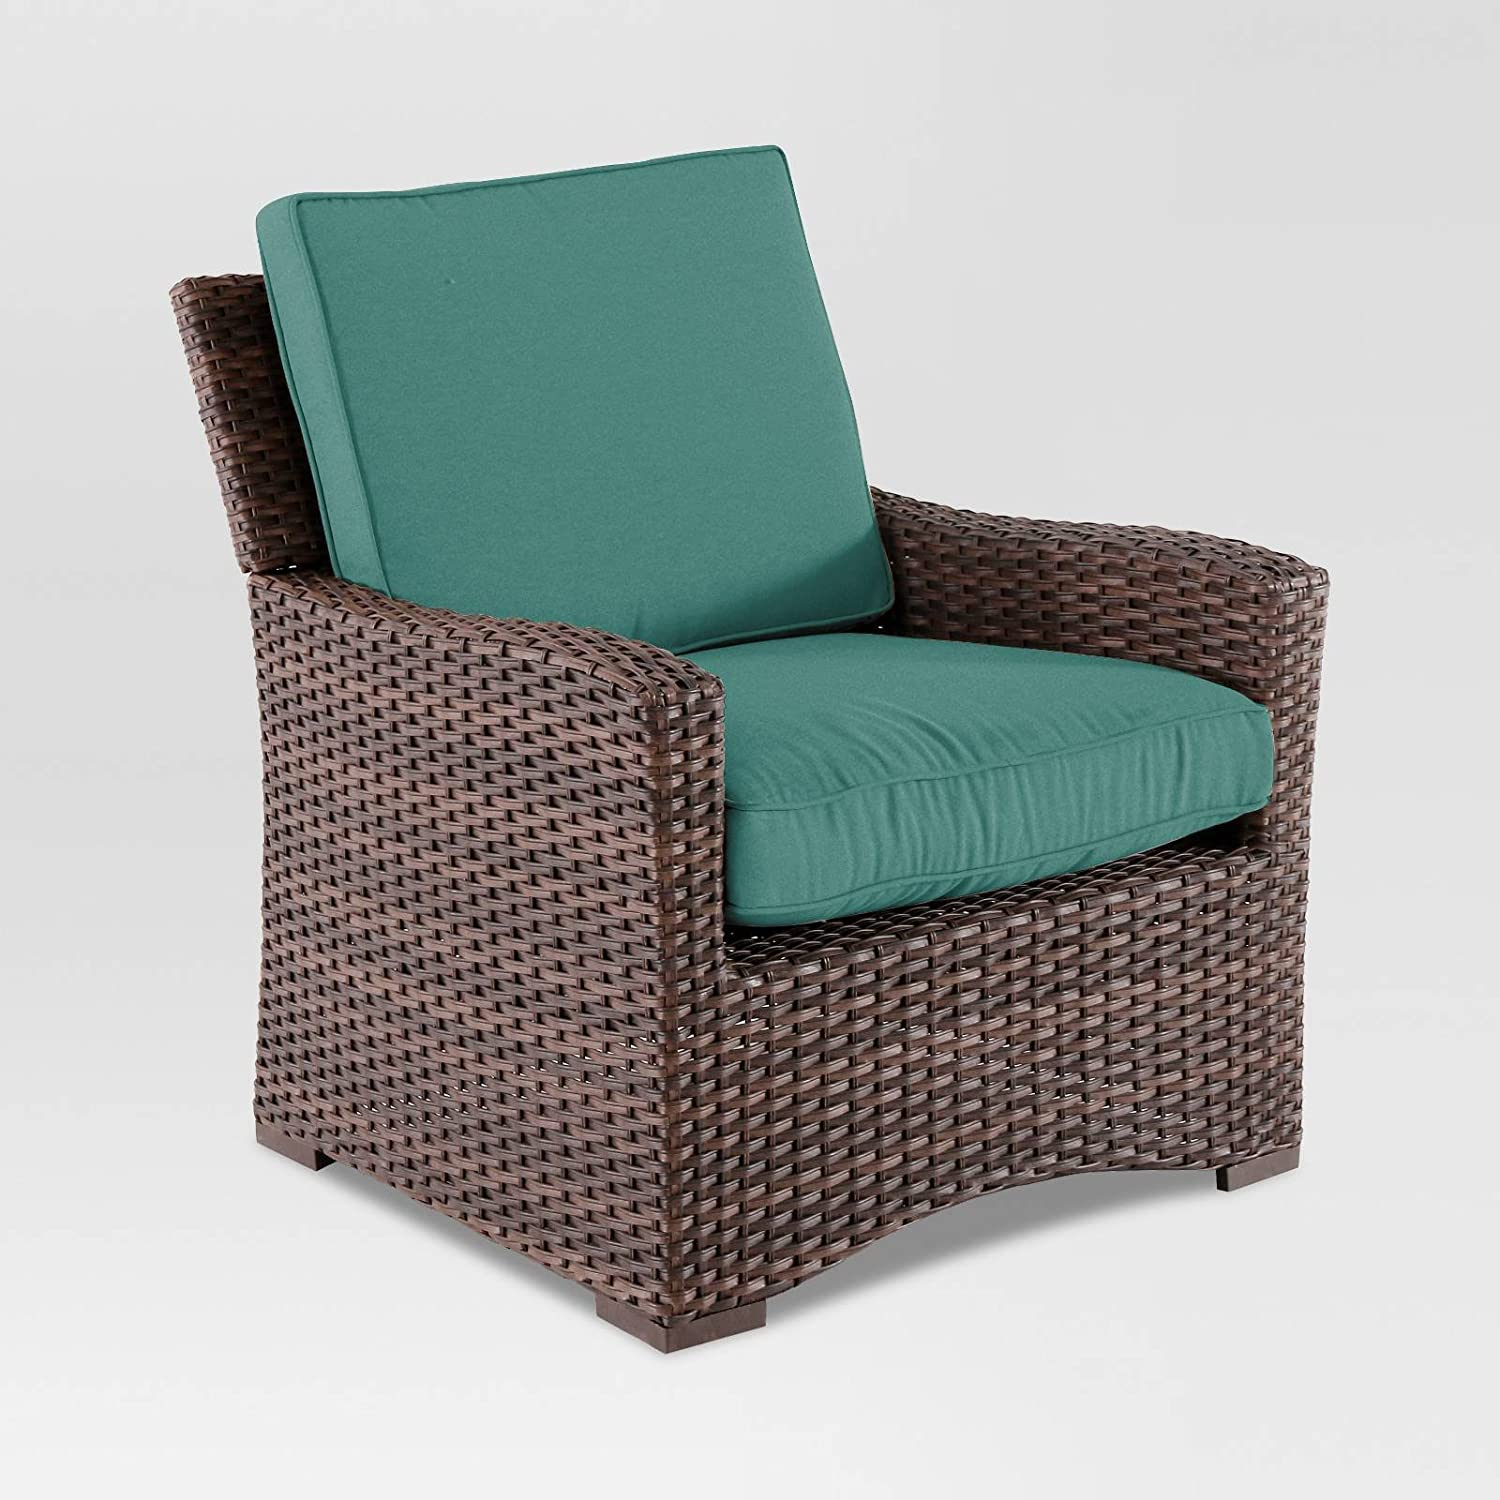 Amazon com halsted wicker patio club chair turquoise garden outdoor